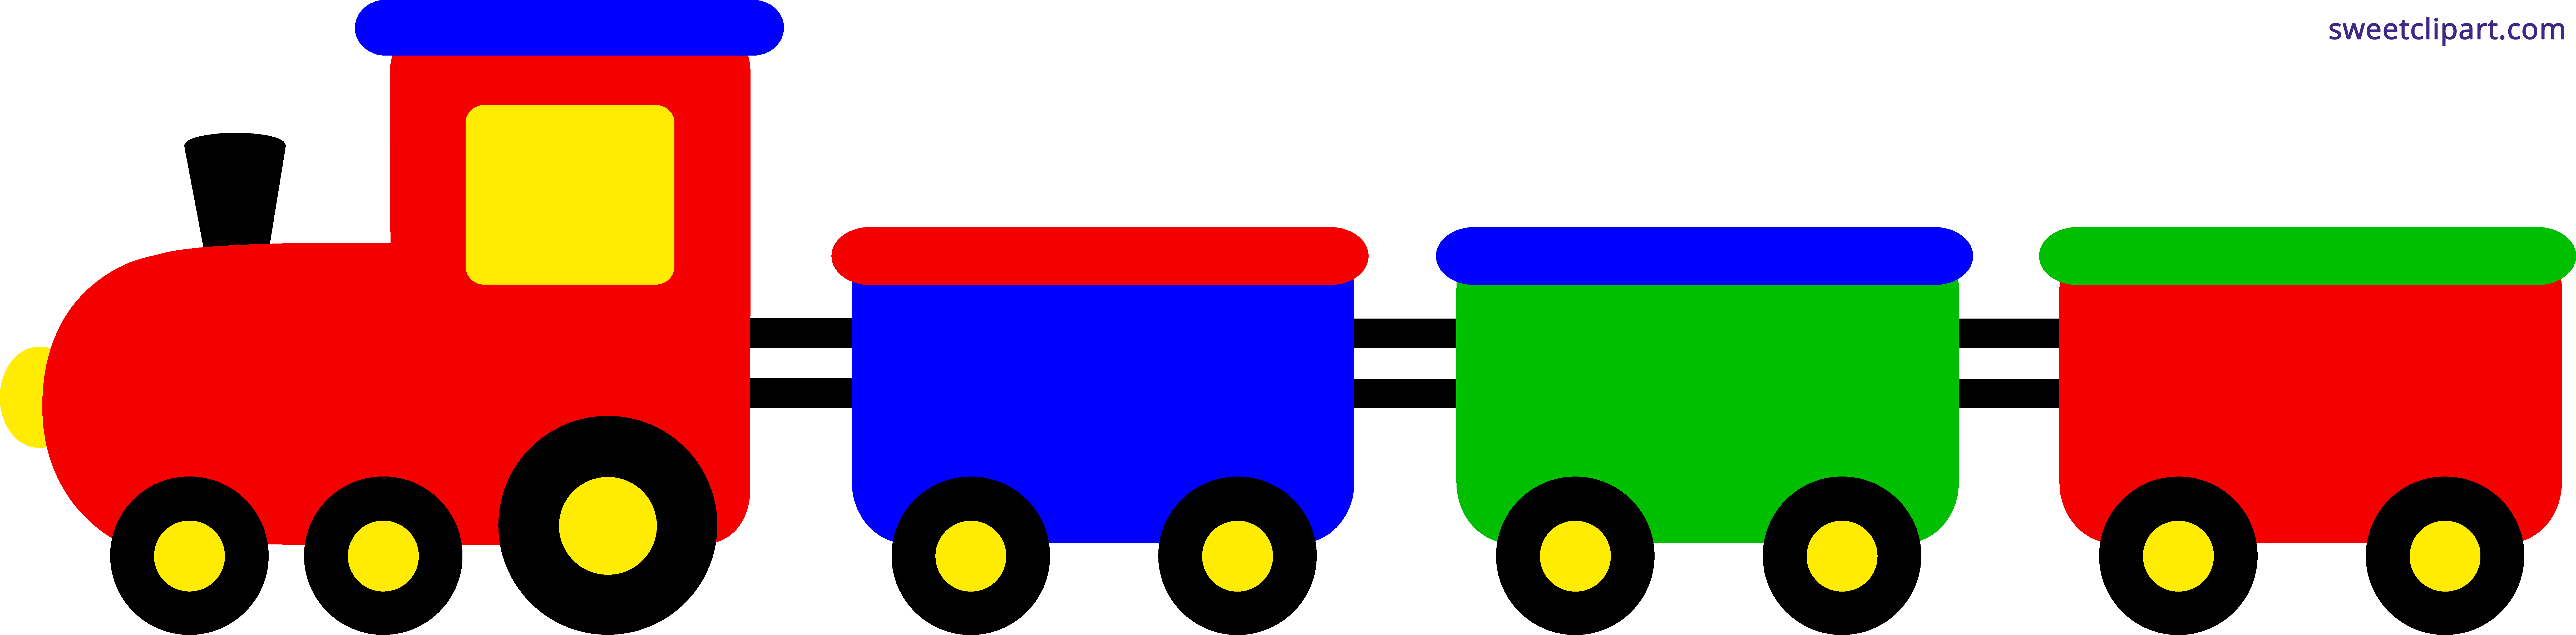 Train car silhouette clipart svg free stock Train Track Clipart at GetDrawings.com | Free for personal use Train ... svg free stock